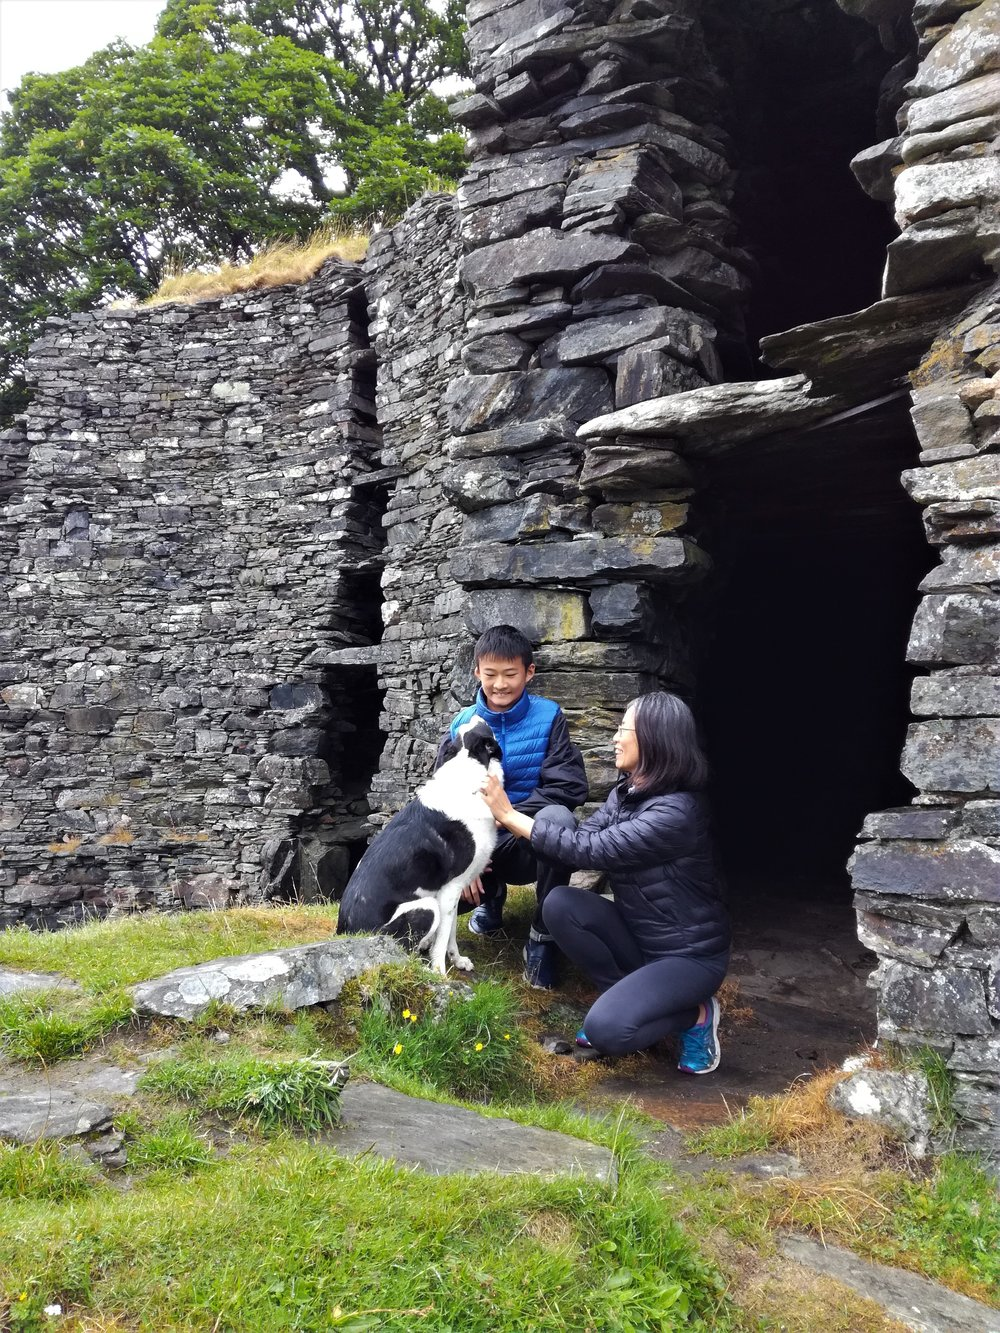 Enjoying Sparkie the collie at the Glenelg brochs.